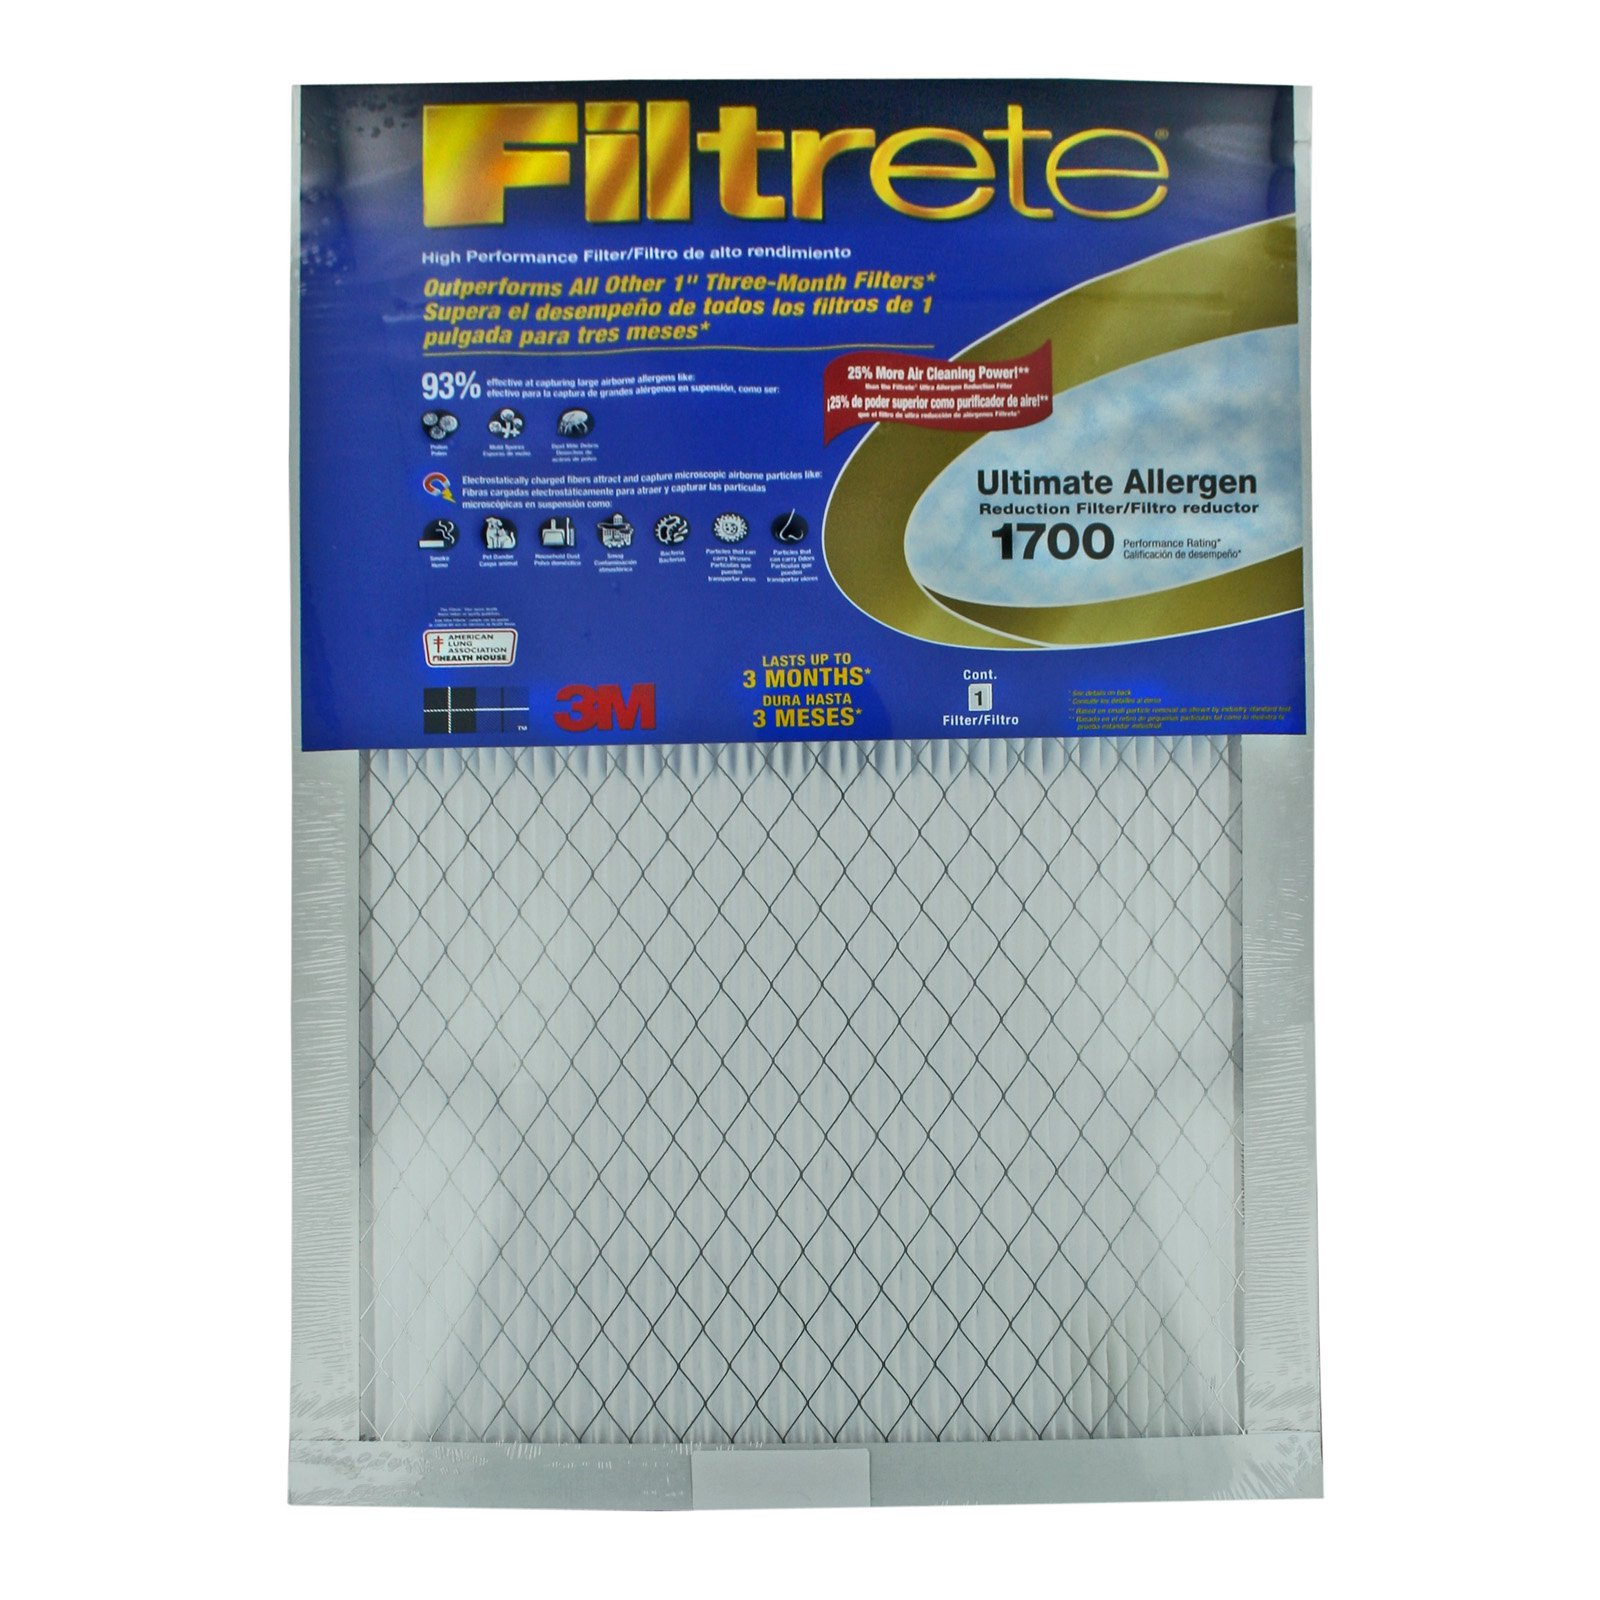 3M UA00DC-6 Filtrete™ Ultimate Allergen Reduction Filters - 6 Pack